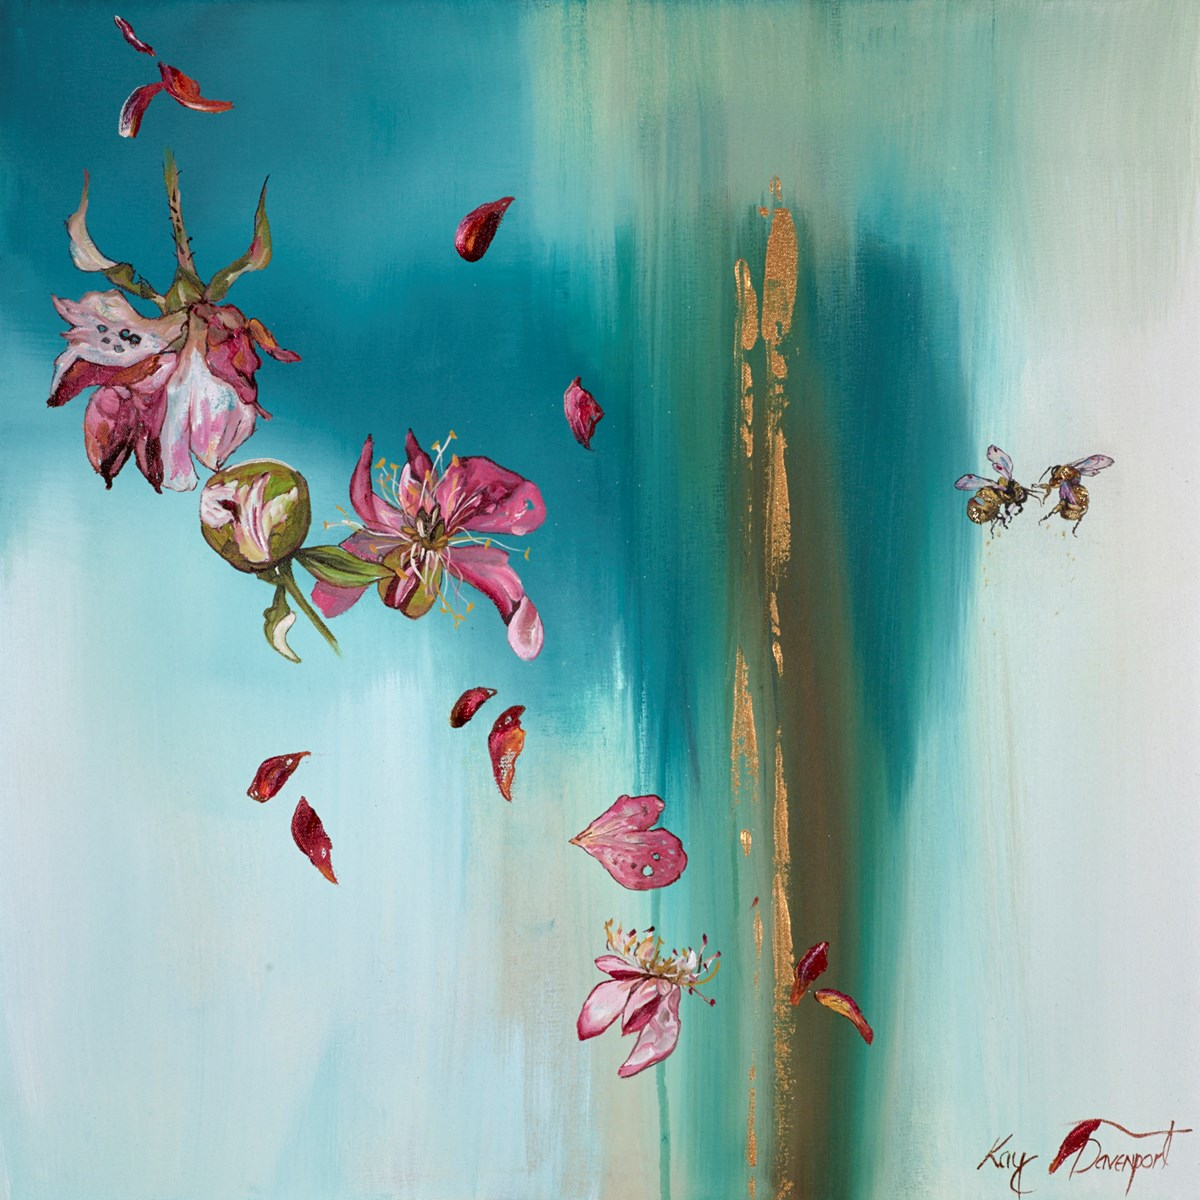 Forever Flowers by kay davenport -  sized 24x24 inches. Available from Whitewall Galleries